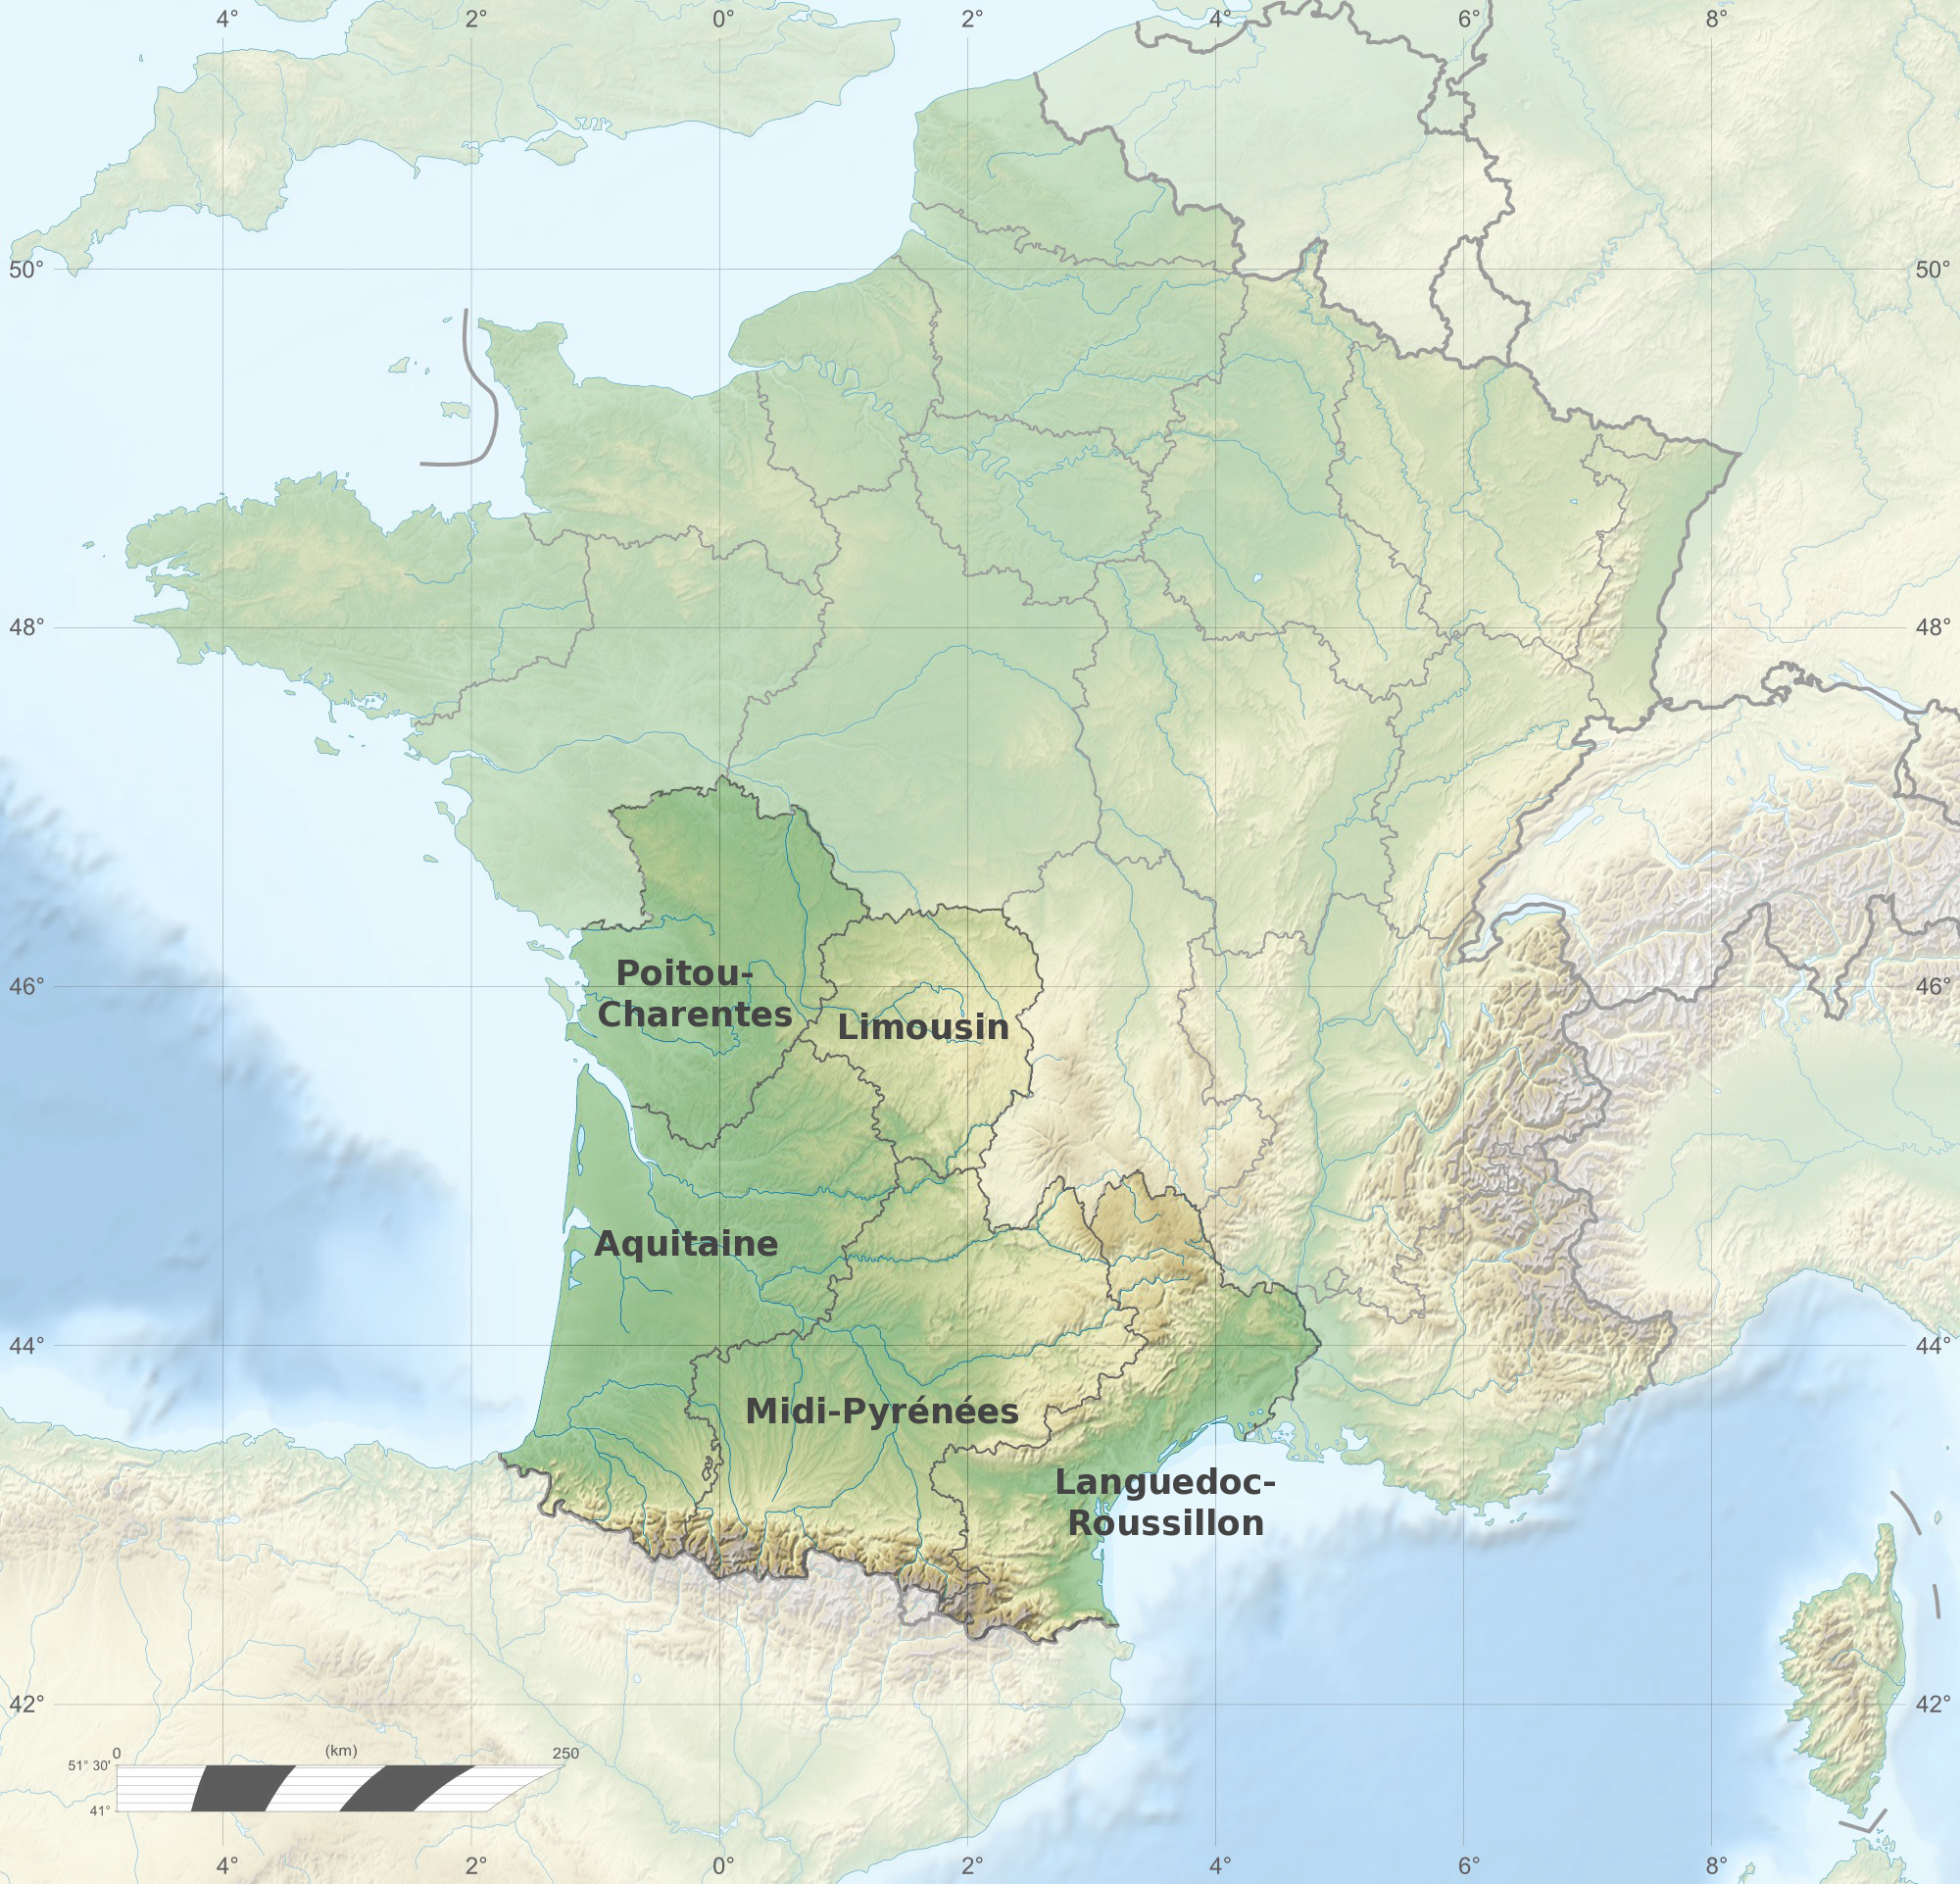 carte du sud ouest france File:France relief location map South West highlighted fr.png